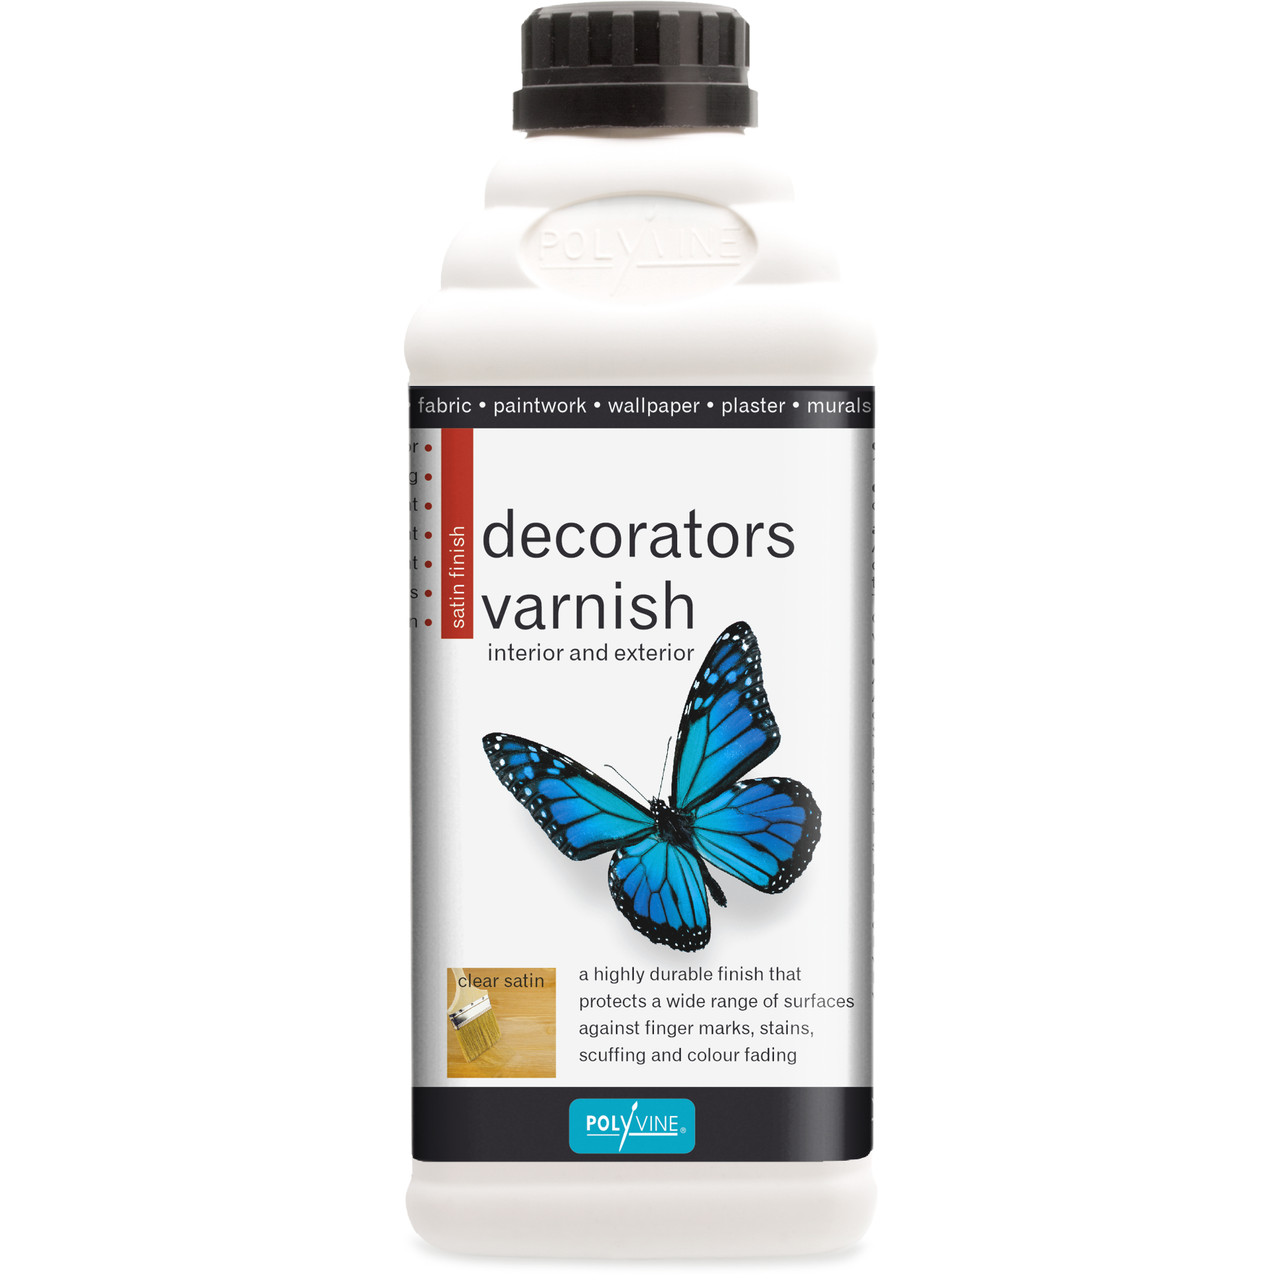 Polyvine Decorators Varnish Satin